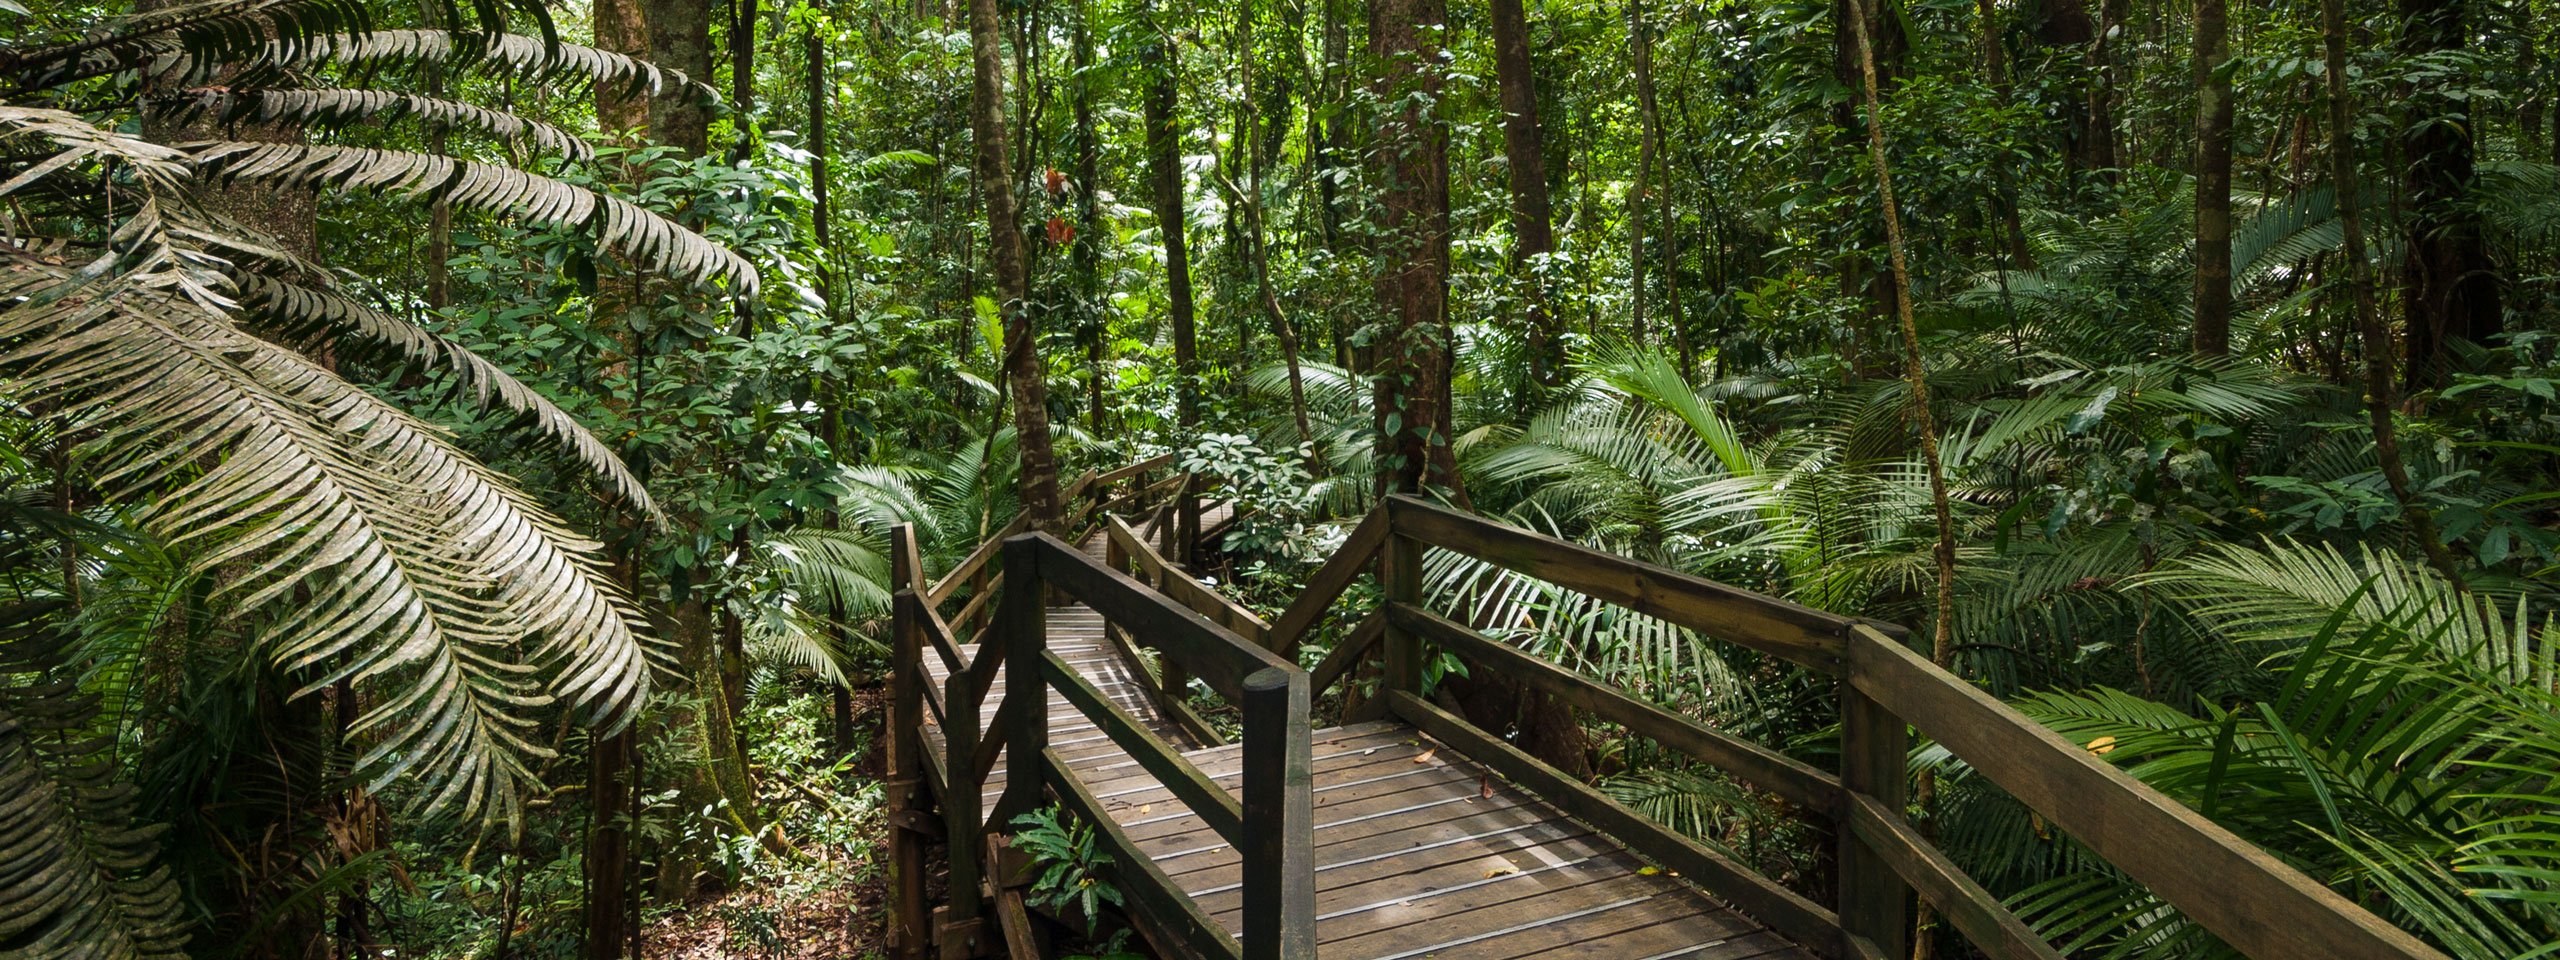 Daintree Rainforest, QLD